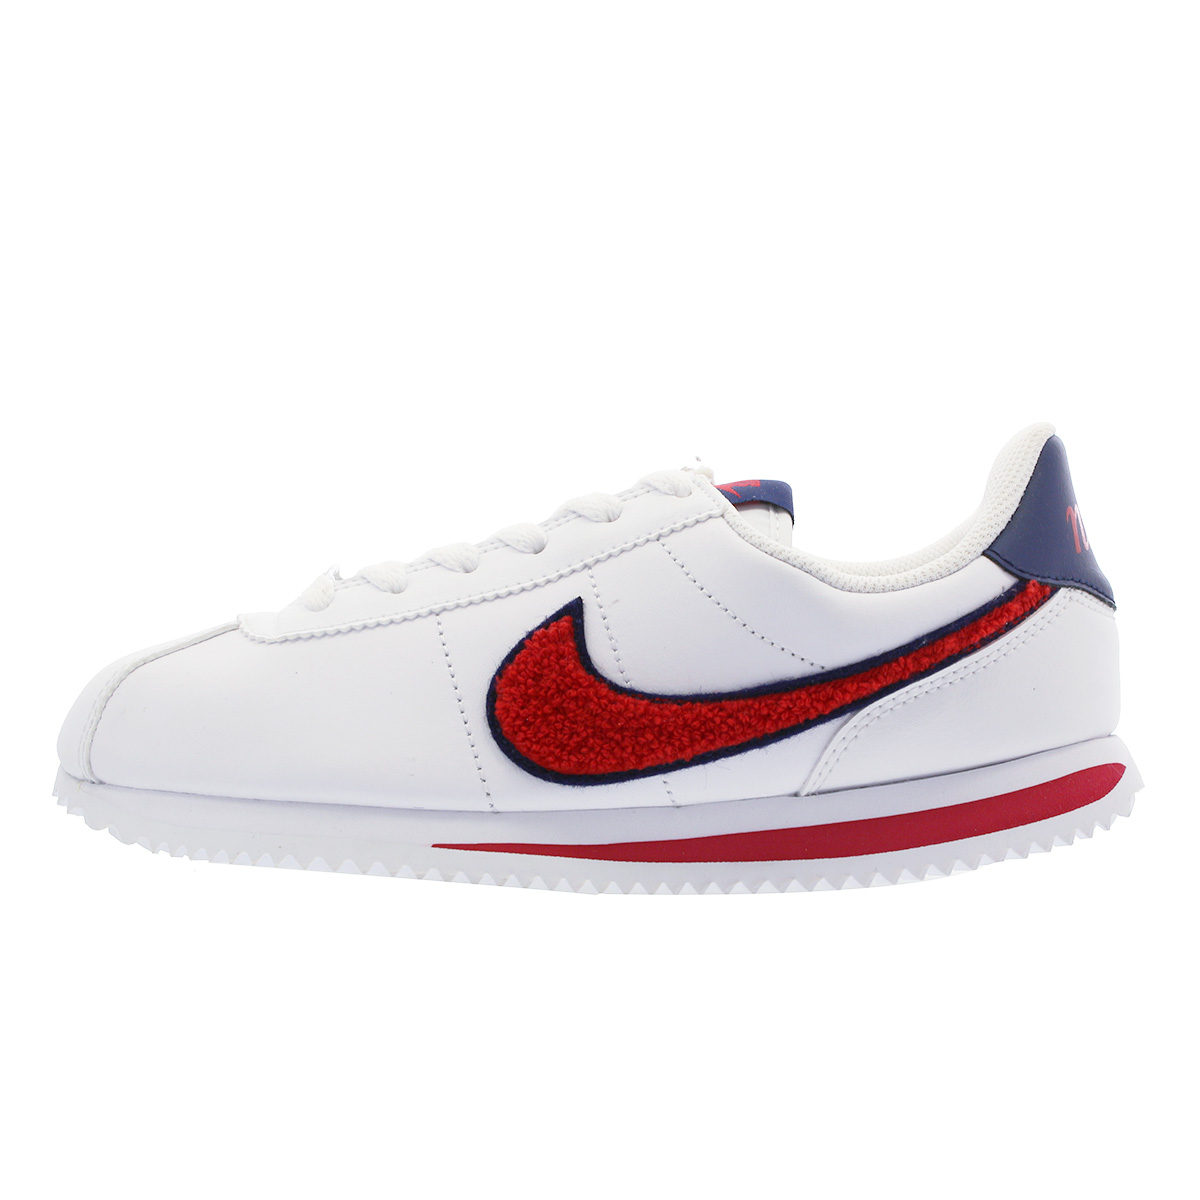 6c7abc5a new zealand nike cortez white red blue note b94af 7a23d